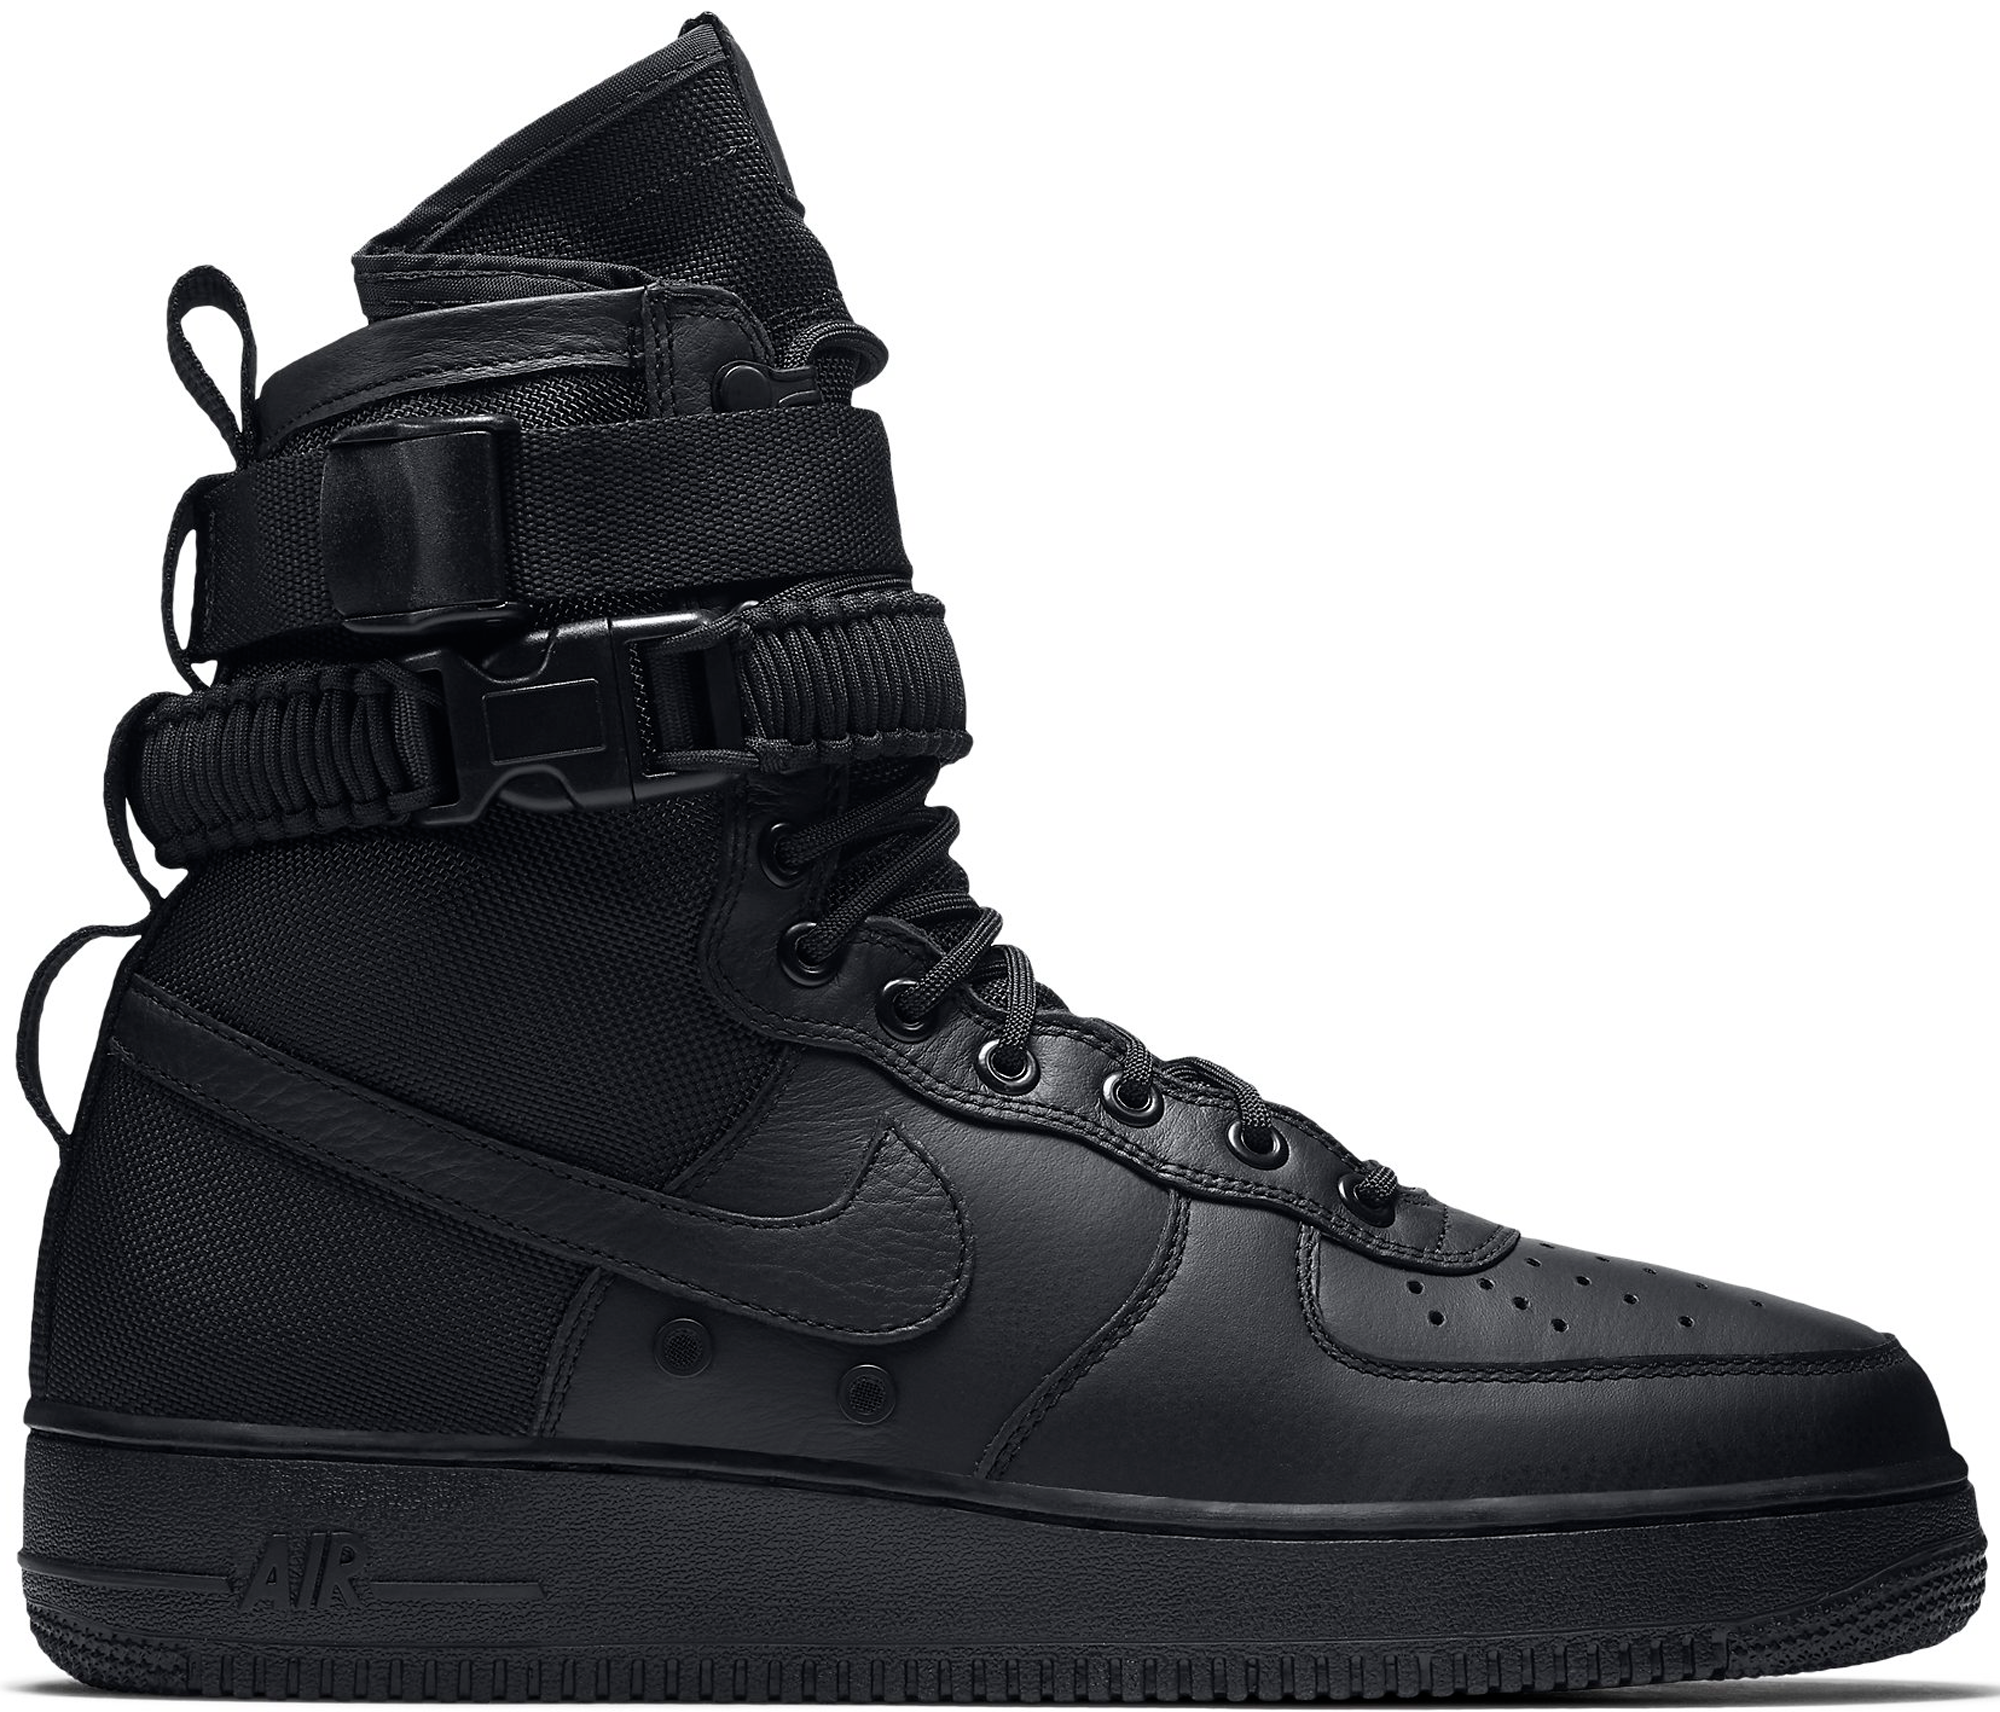 Force air nike 1 high top black advise to wear in summer in 2019